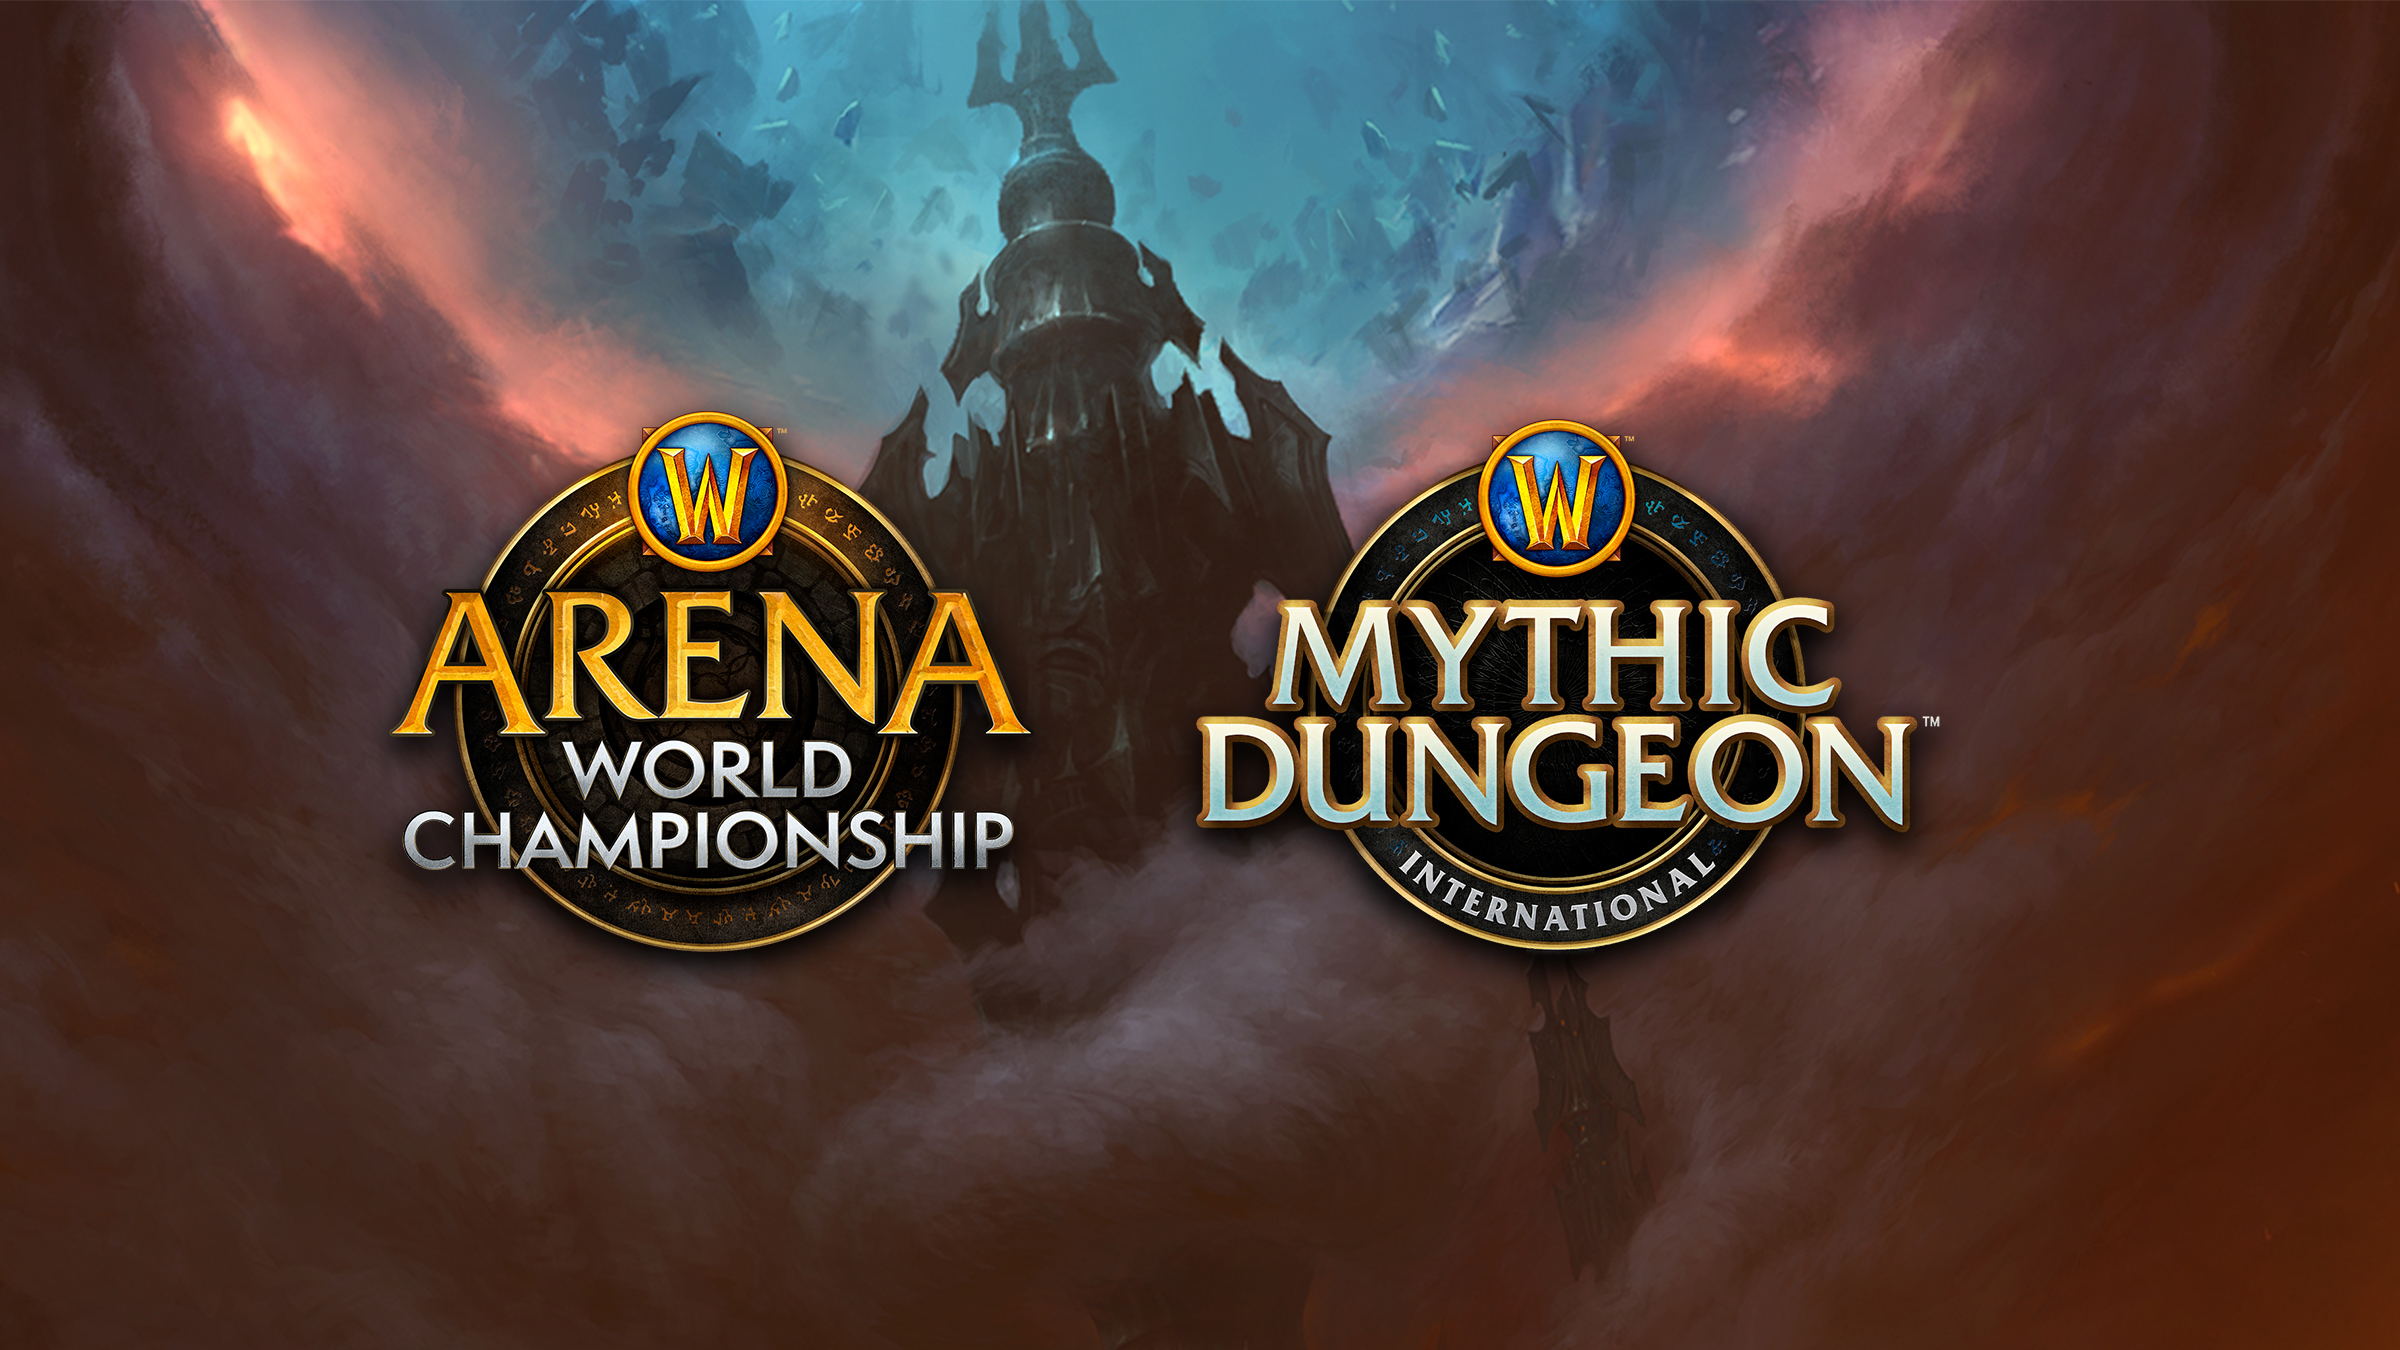 Arena World Championship & Mythic Dungeon International 2021 Plans are Here!